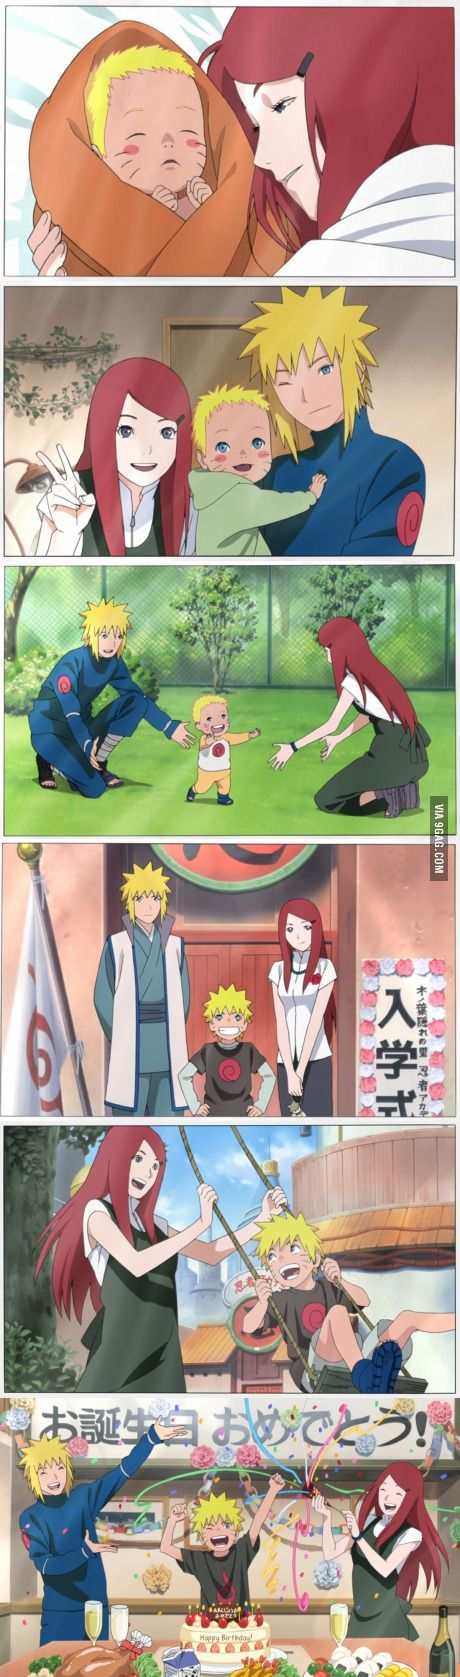 If Naruto grew up with his parents. Tears? In MY eyes? No you have to dream :'(